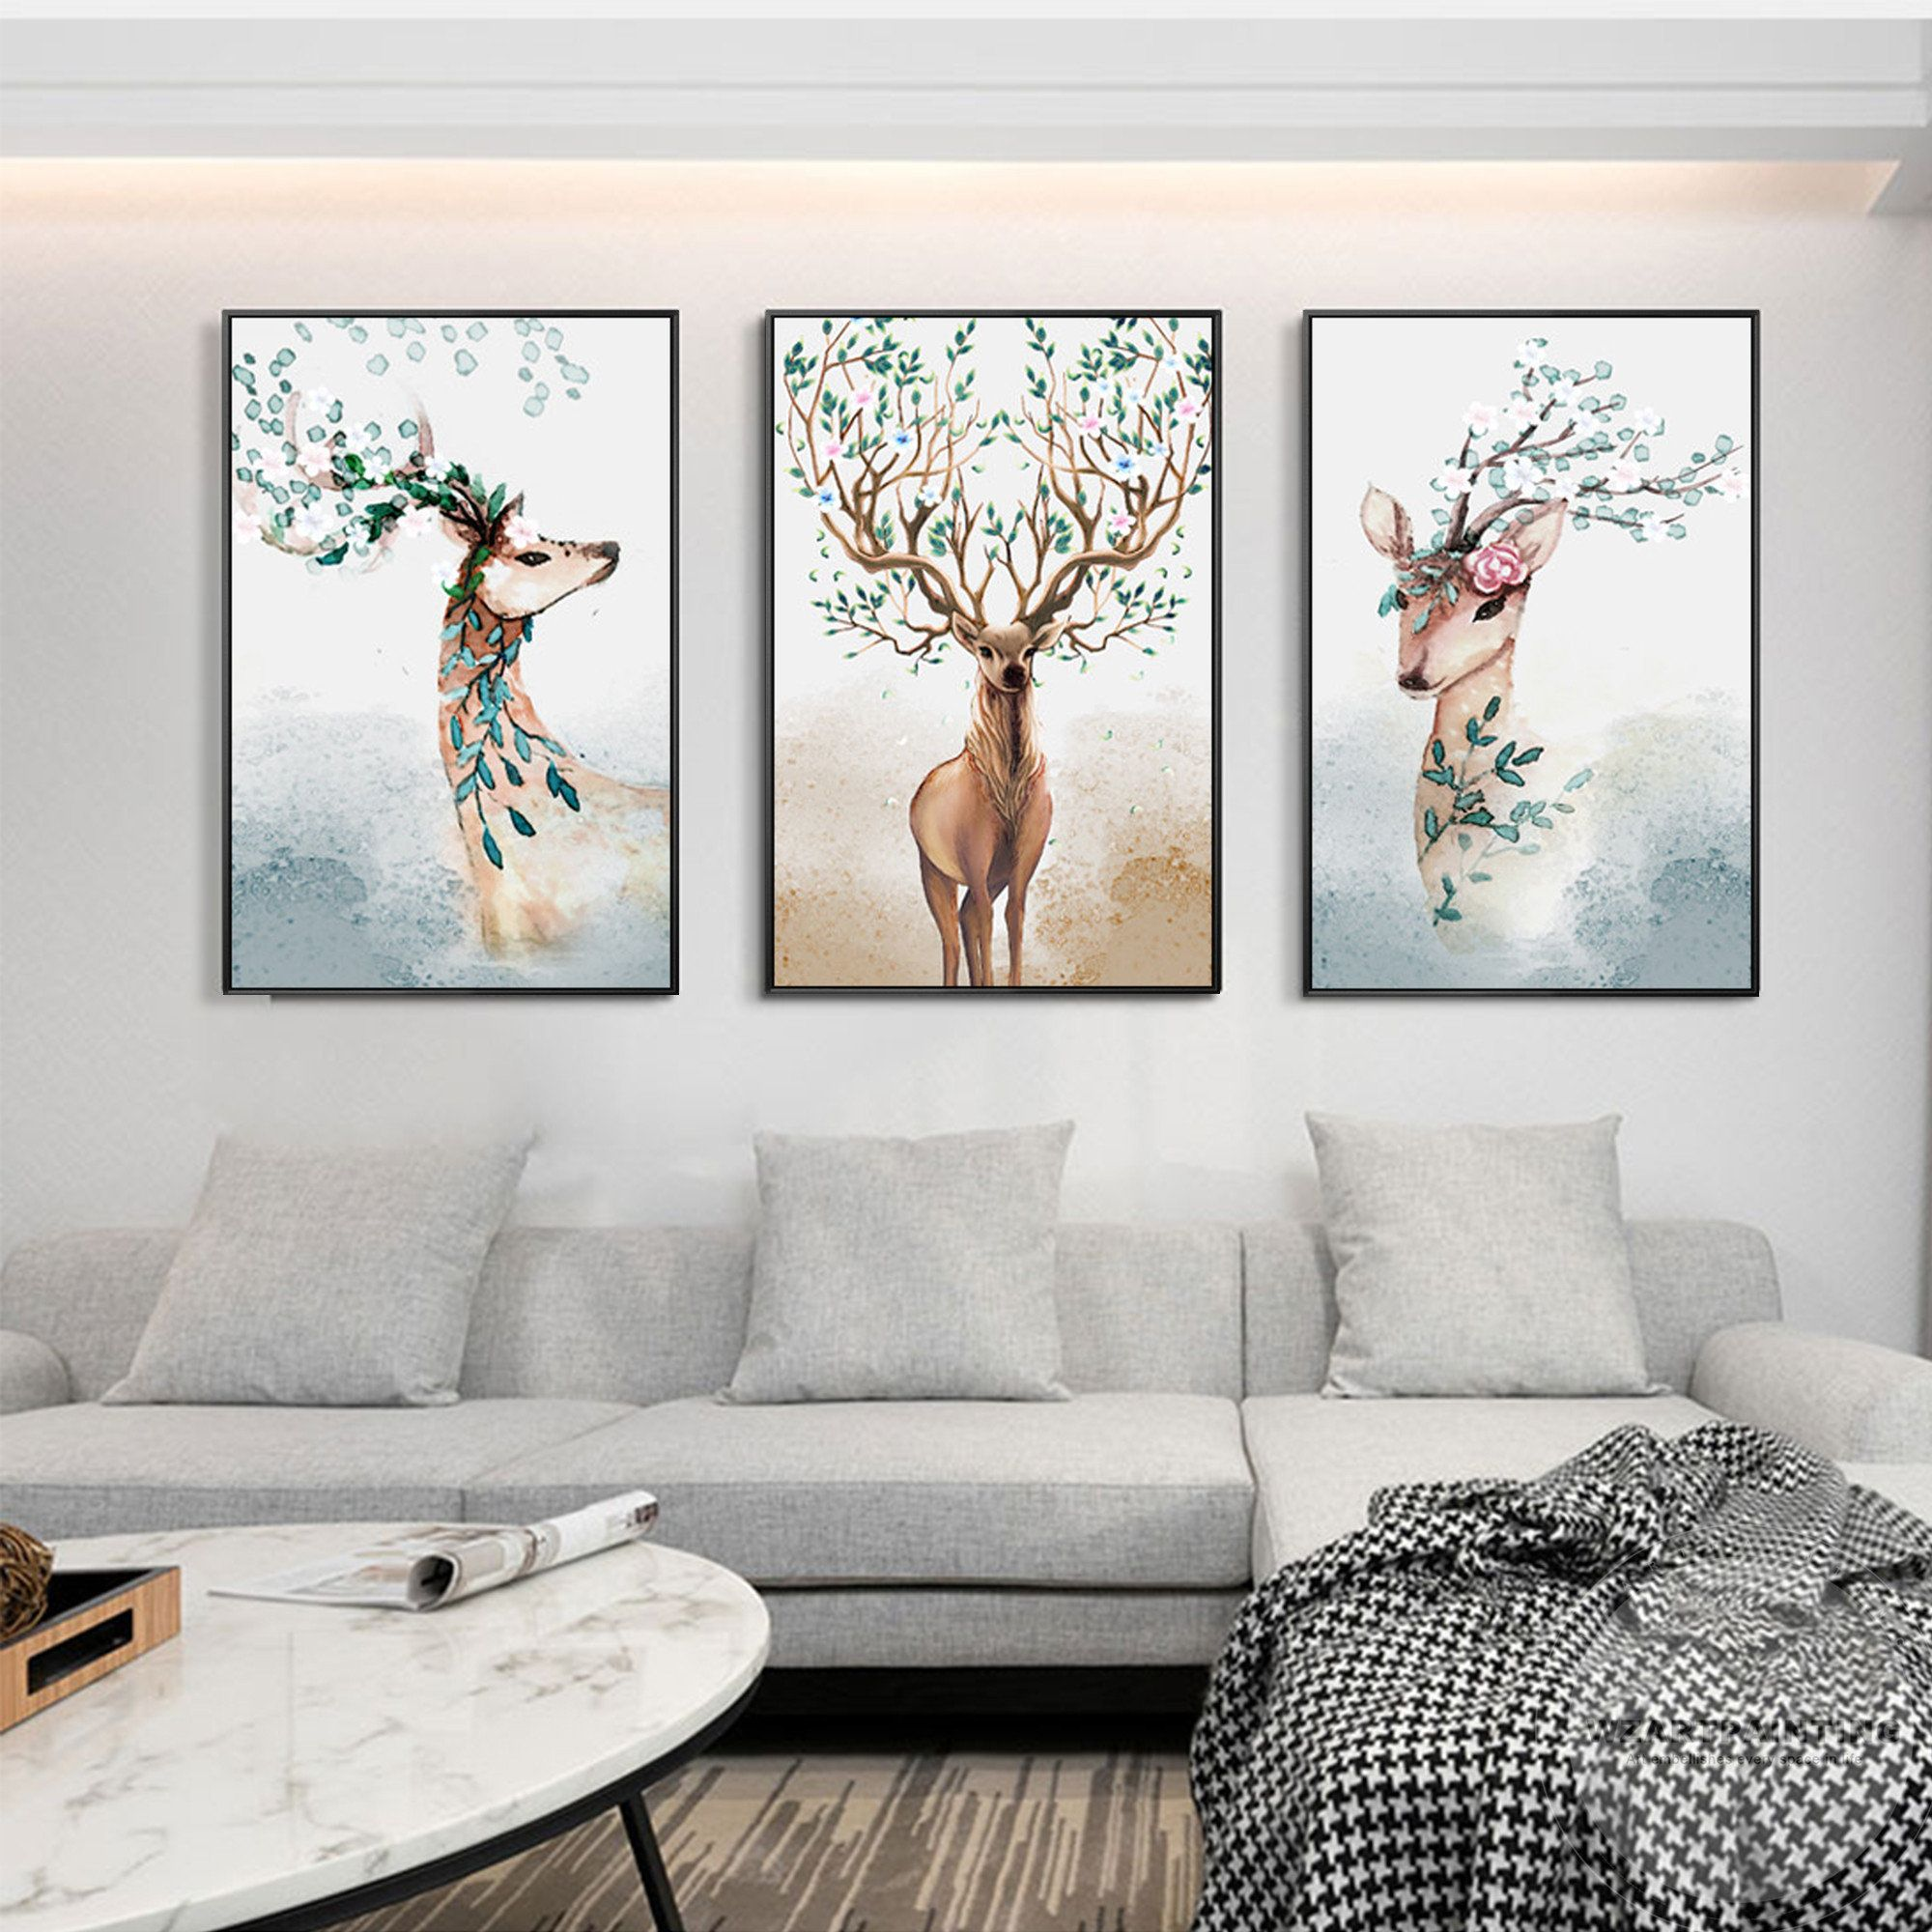 Framed Wall Art 3 Pieces Deer Animal Green Leaf Print Painting On Canvas Framed Painting Large Wall Art Pic Diy Canvas Wall Art Abstract Art Wallpaper Wall Art